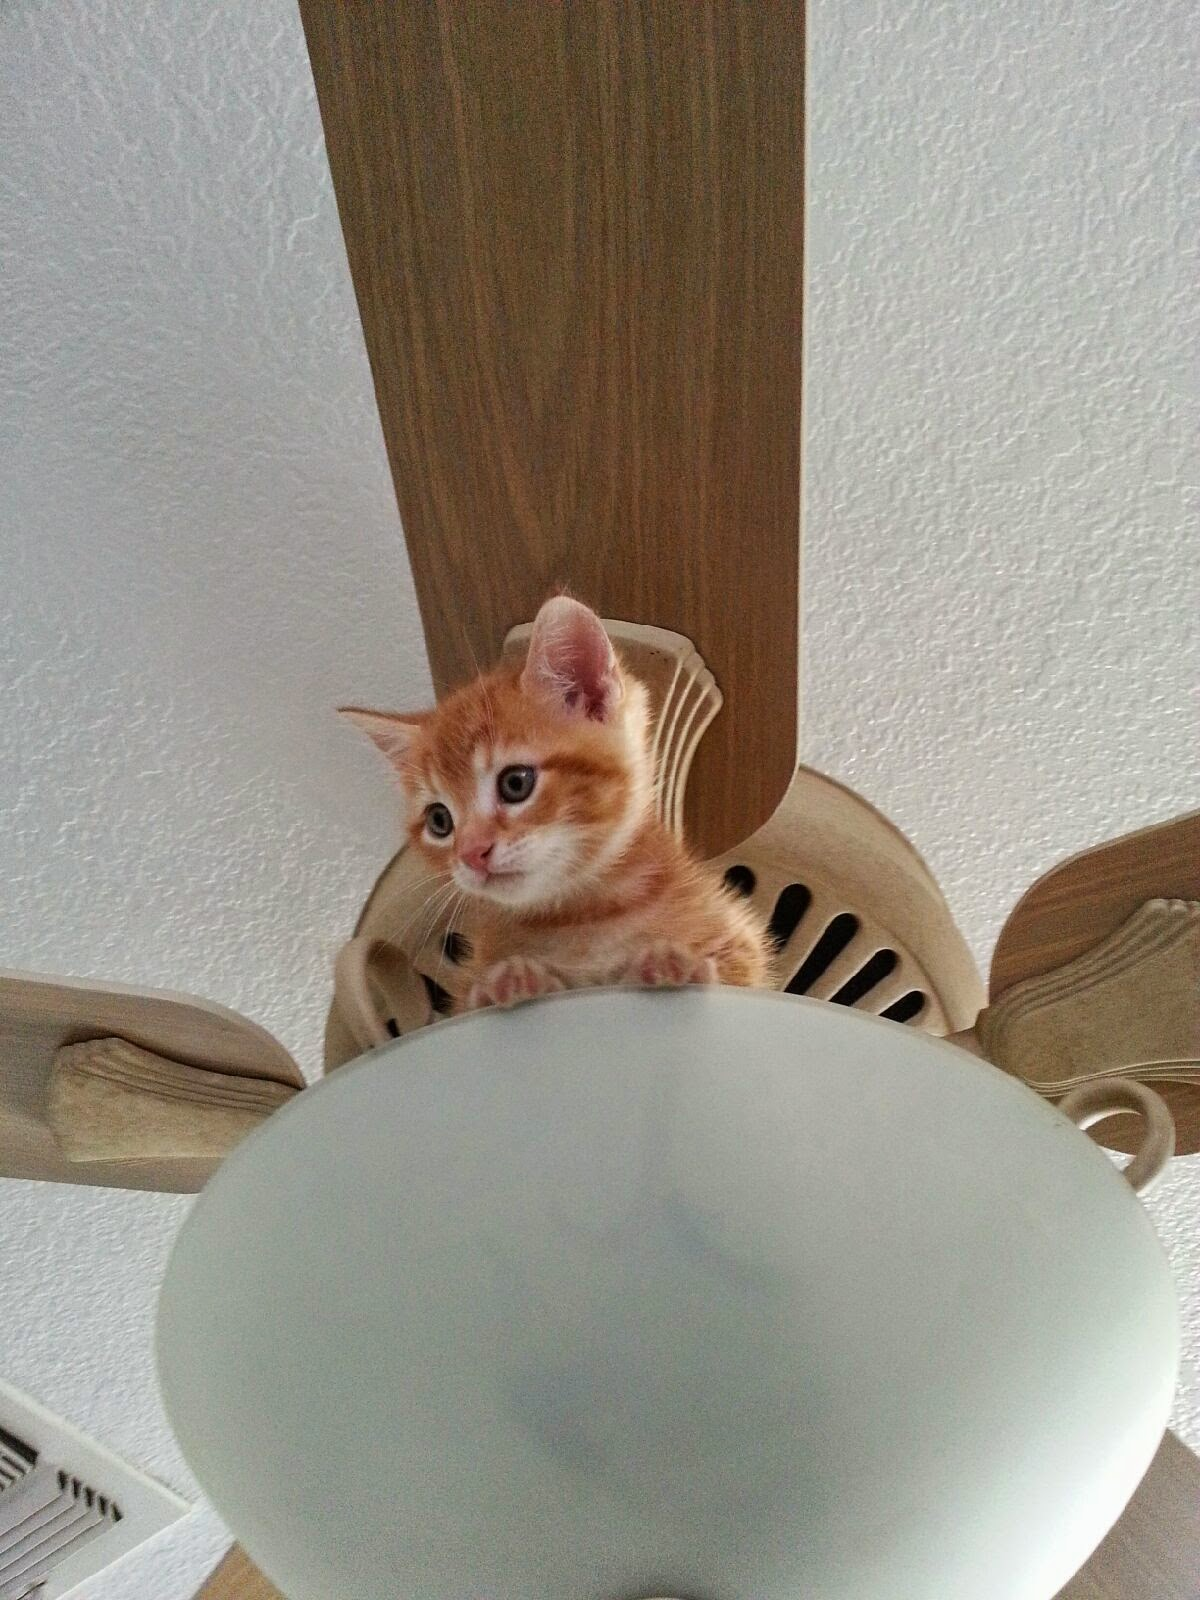 Funny cats - part 96 (40 pics + 10 gifs), cat pictures, kitten stuck on ceiling fan